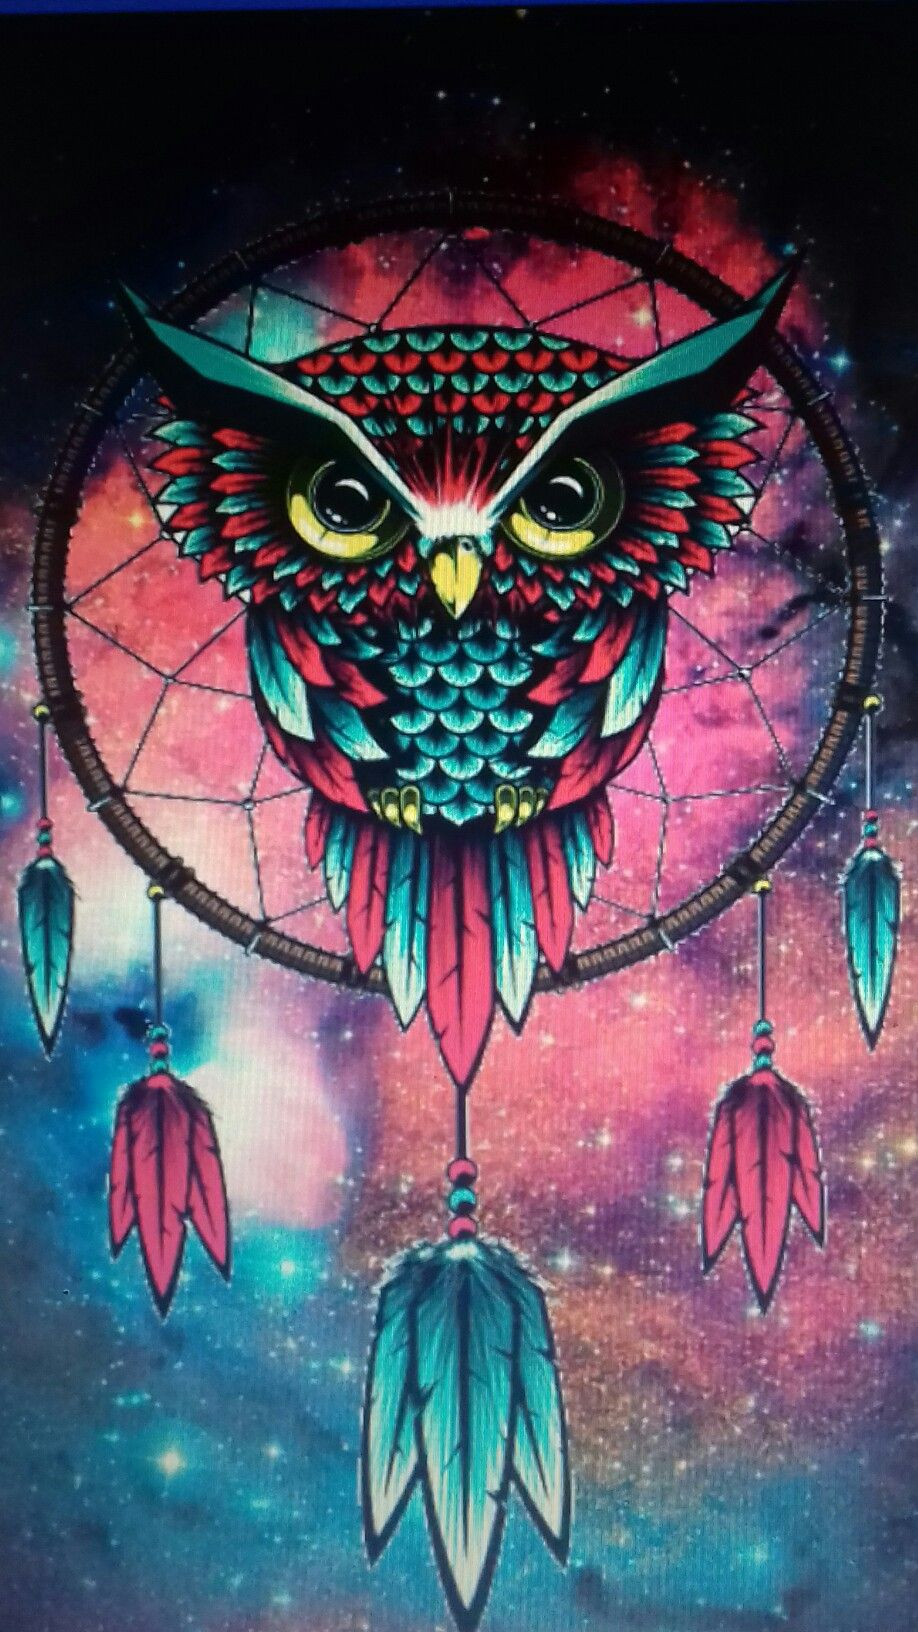 9bcd22f66389 Pin by Joey Gonnering on Fantasy in 2019 | Owl wallpaper, Owl dream ...